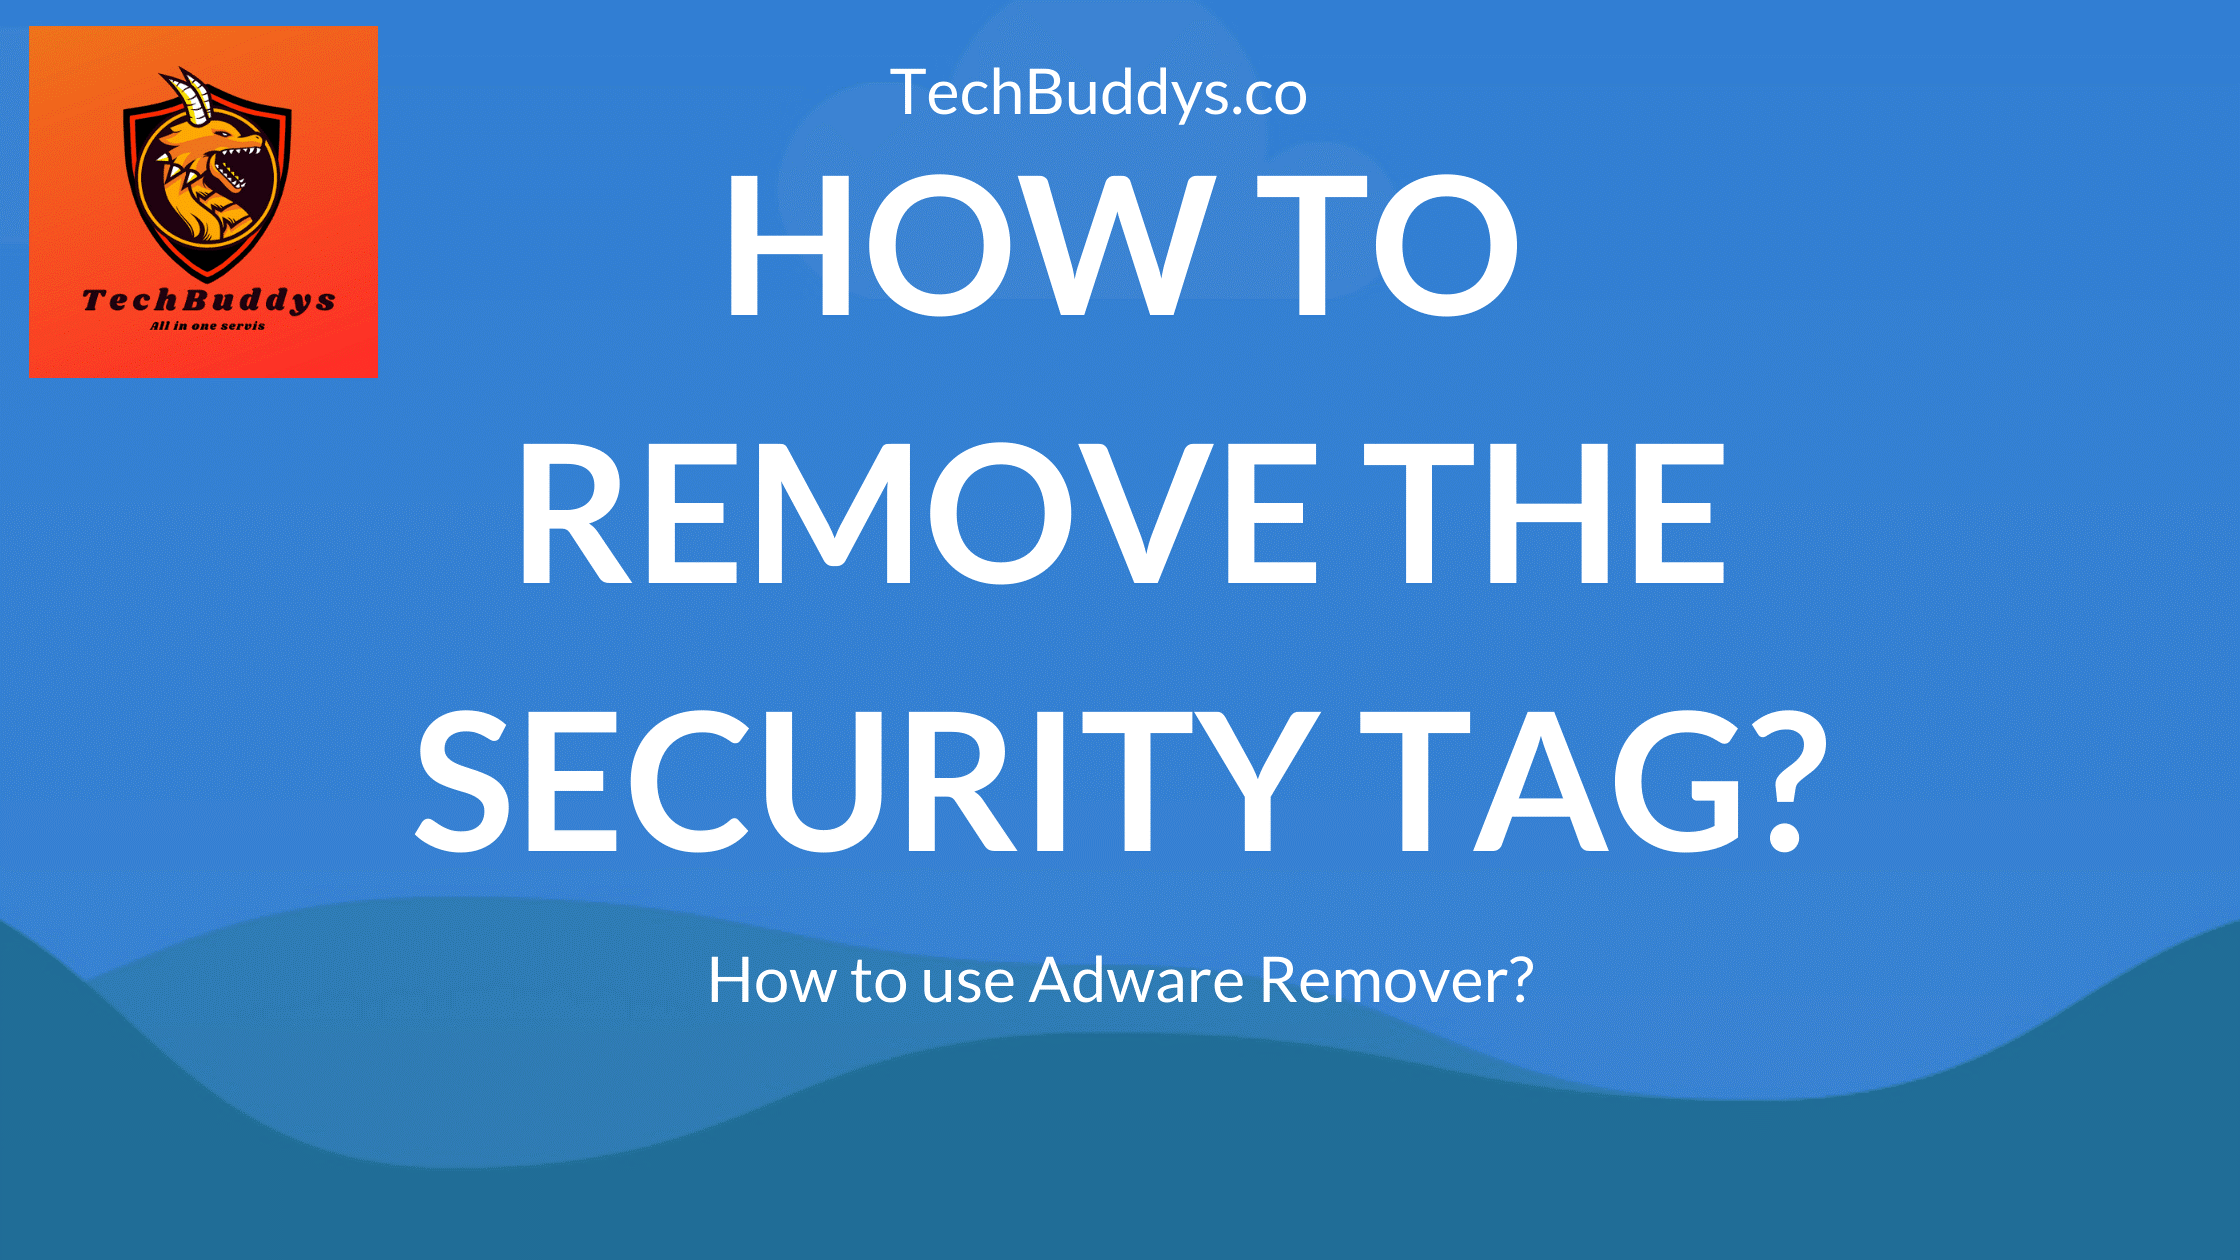 How to remove the Security Tag? How to use Adware Remover?